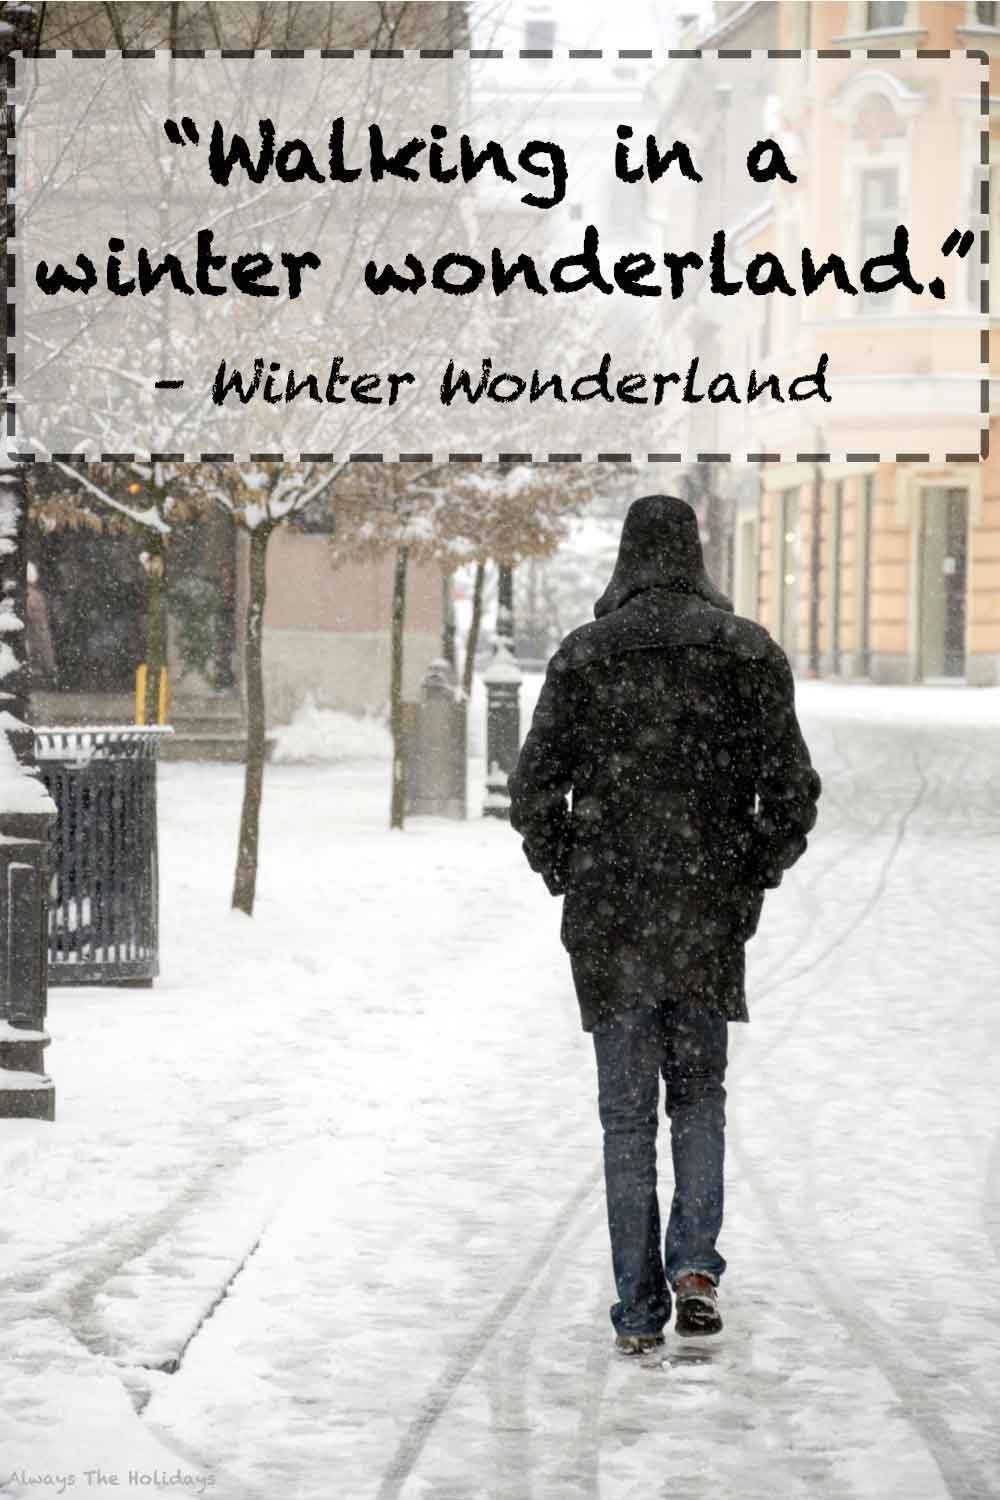 A man in a black jacket walking down a snowy sidewalk with a text overlay of Christmas quotes from songs.